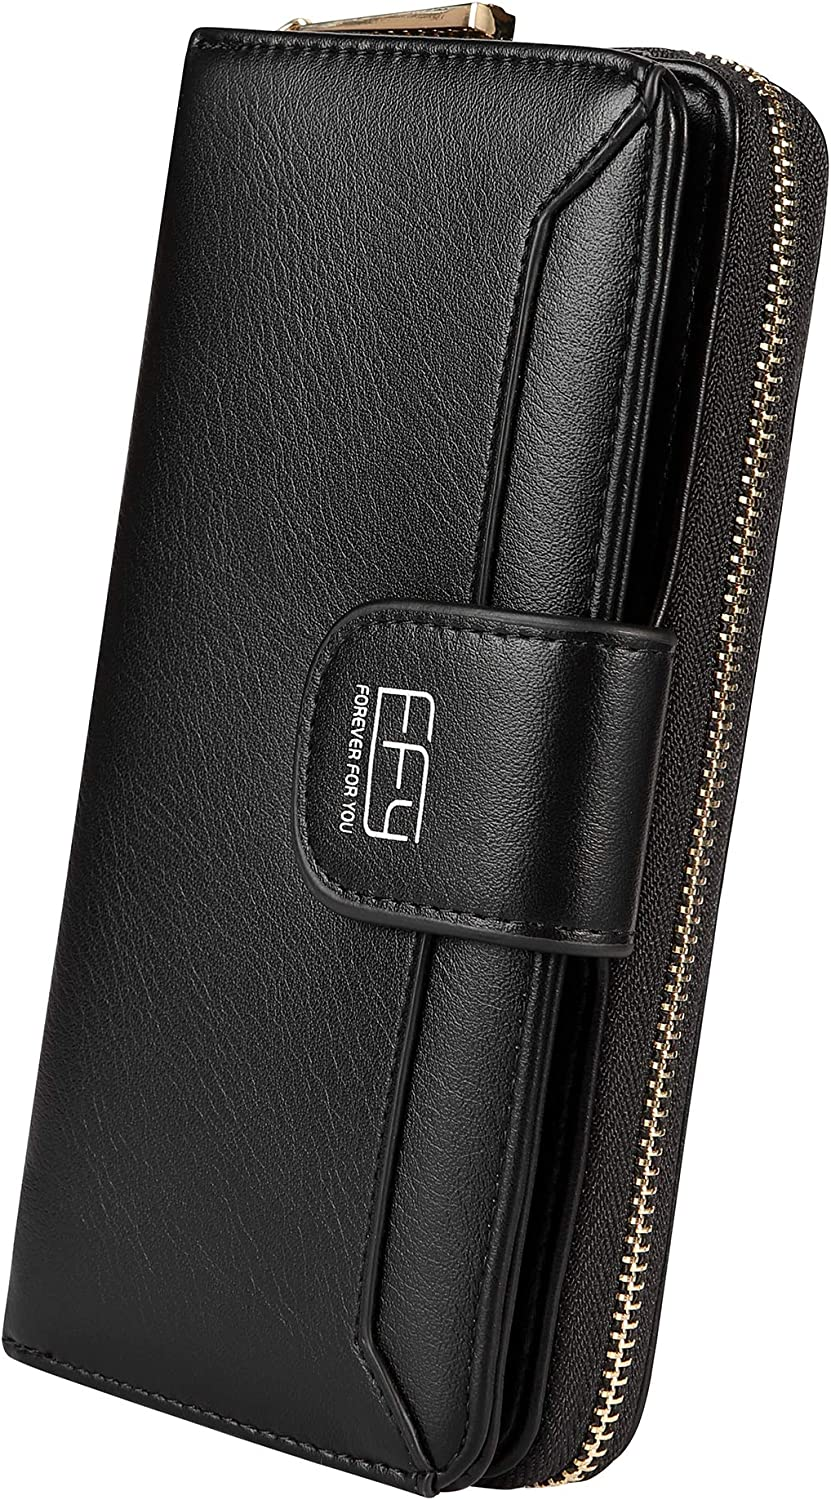 Cynure Women's Long 12 excellence Slots Card Holder Clu Zipper Arlington Mall Leather